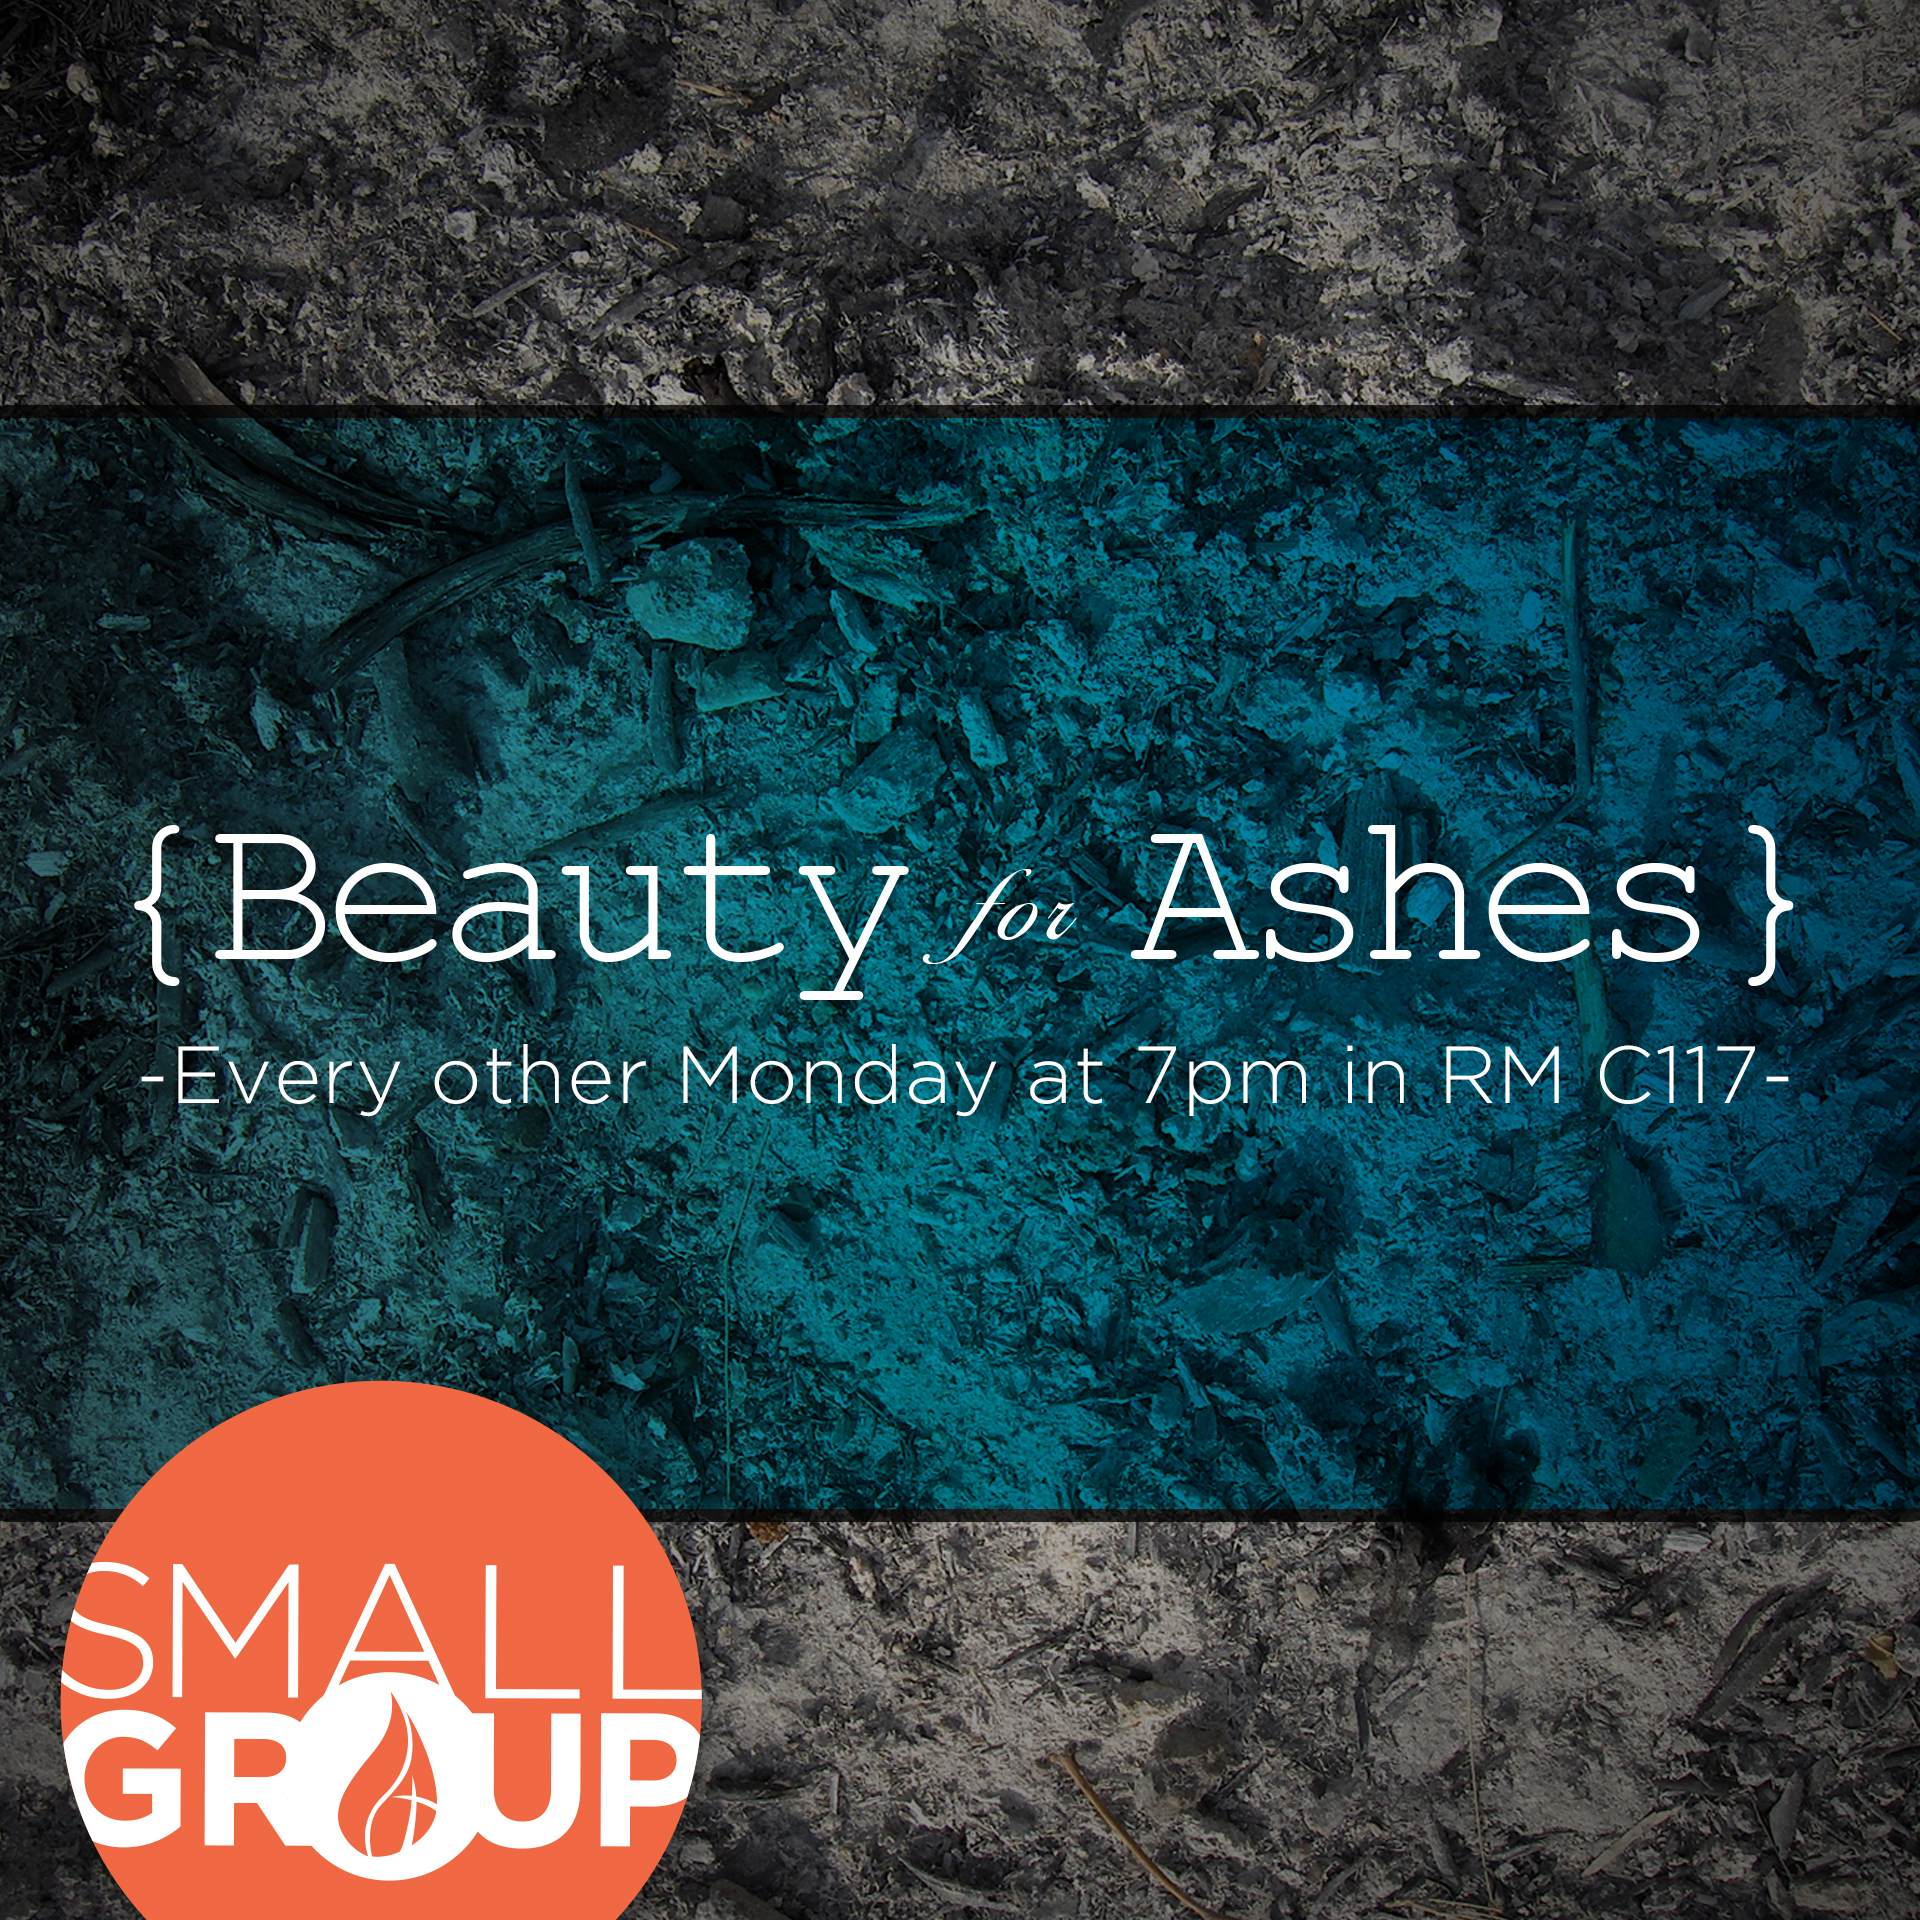 Beauty for ashes w logo